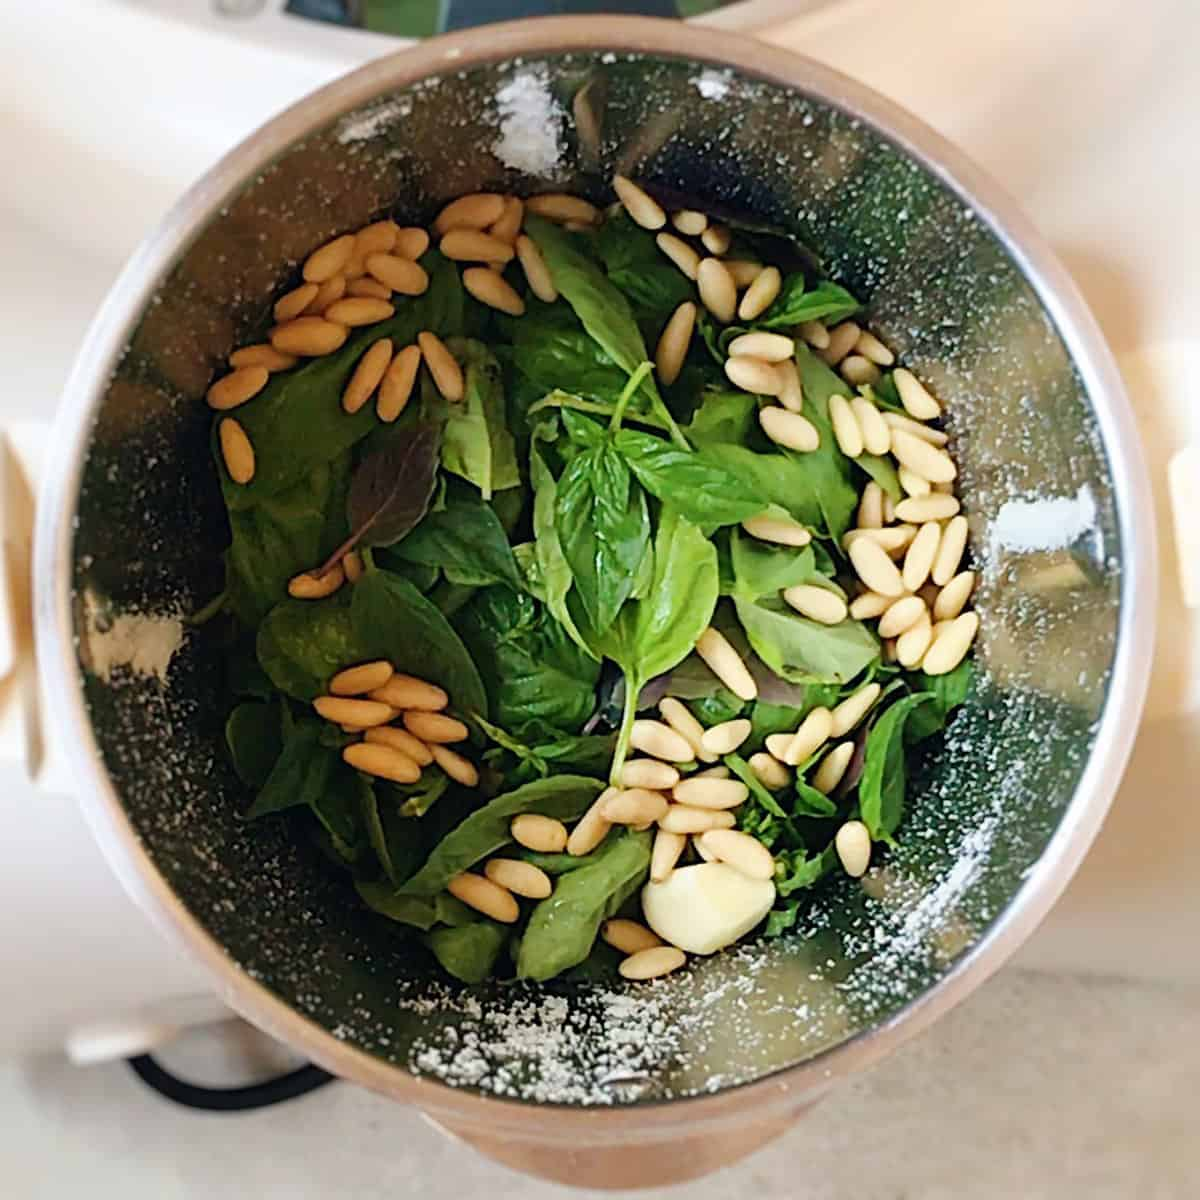 Pesto en thermomix